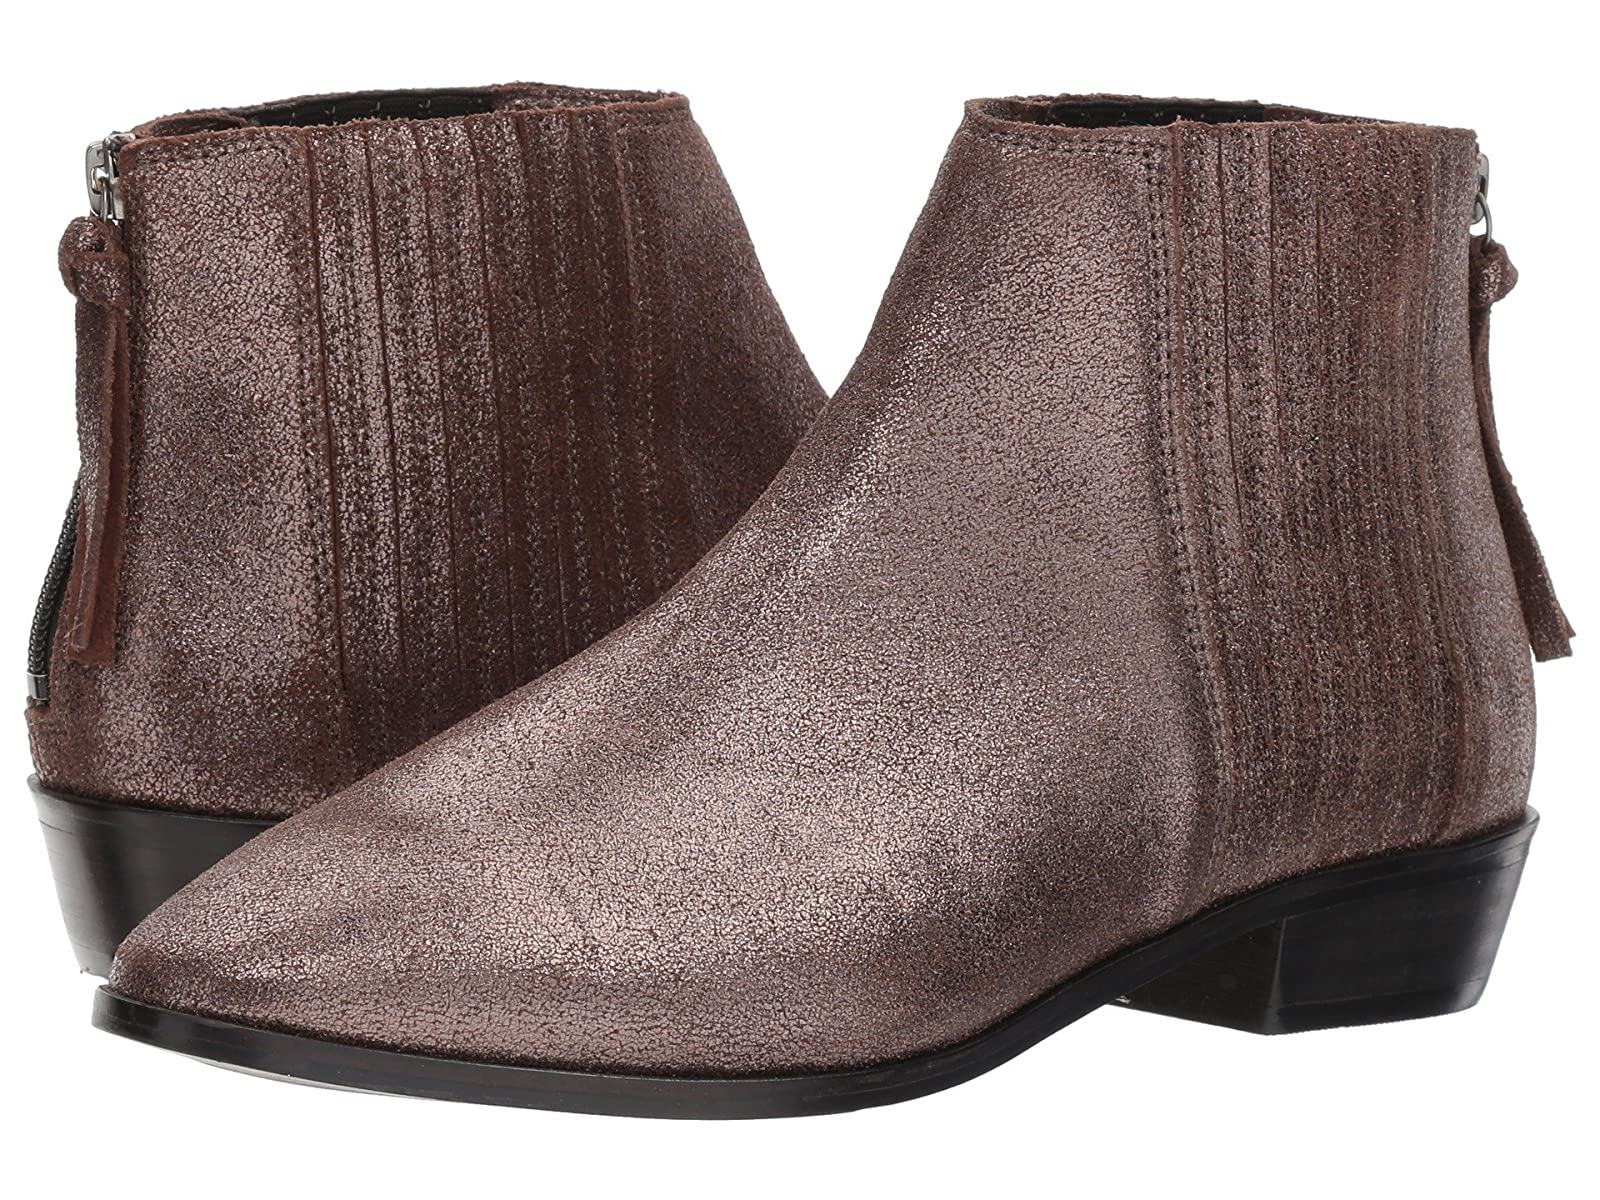 Kenneth Cole Reaction Loop-YCheap and distinctive eye-catching shoes